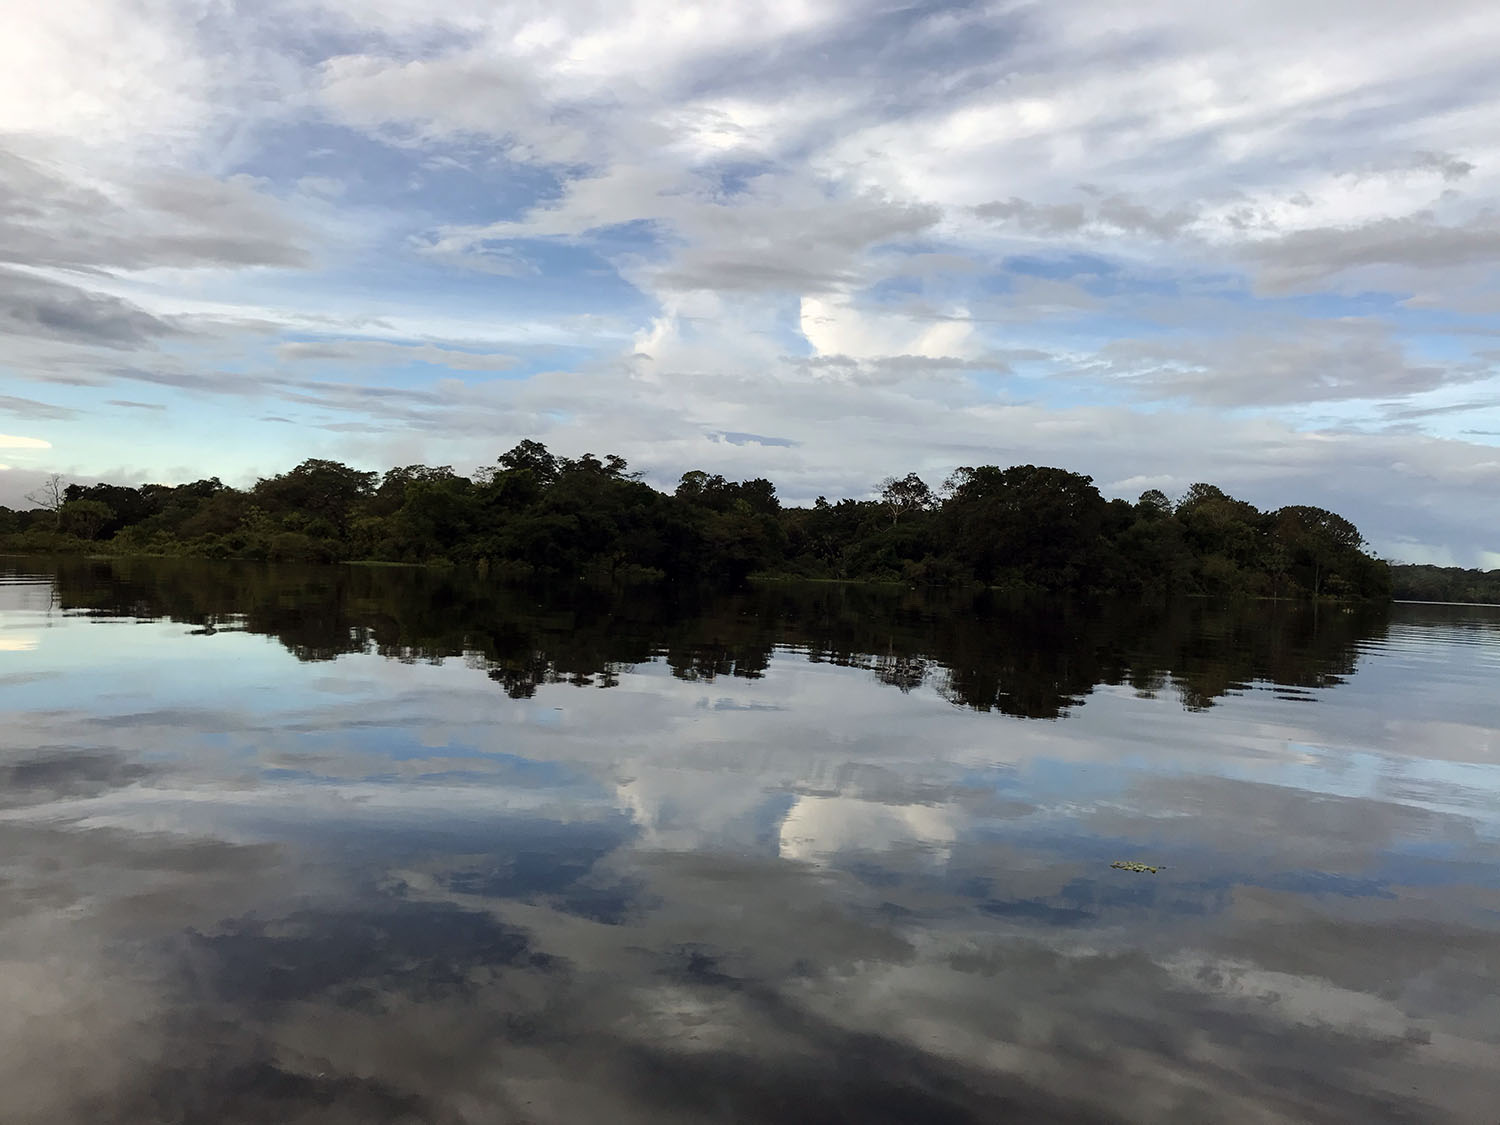 Amazon lakes reflecting the beautiful sky and the islands